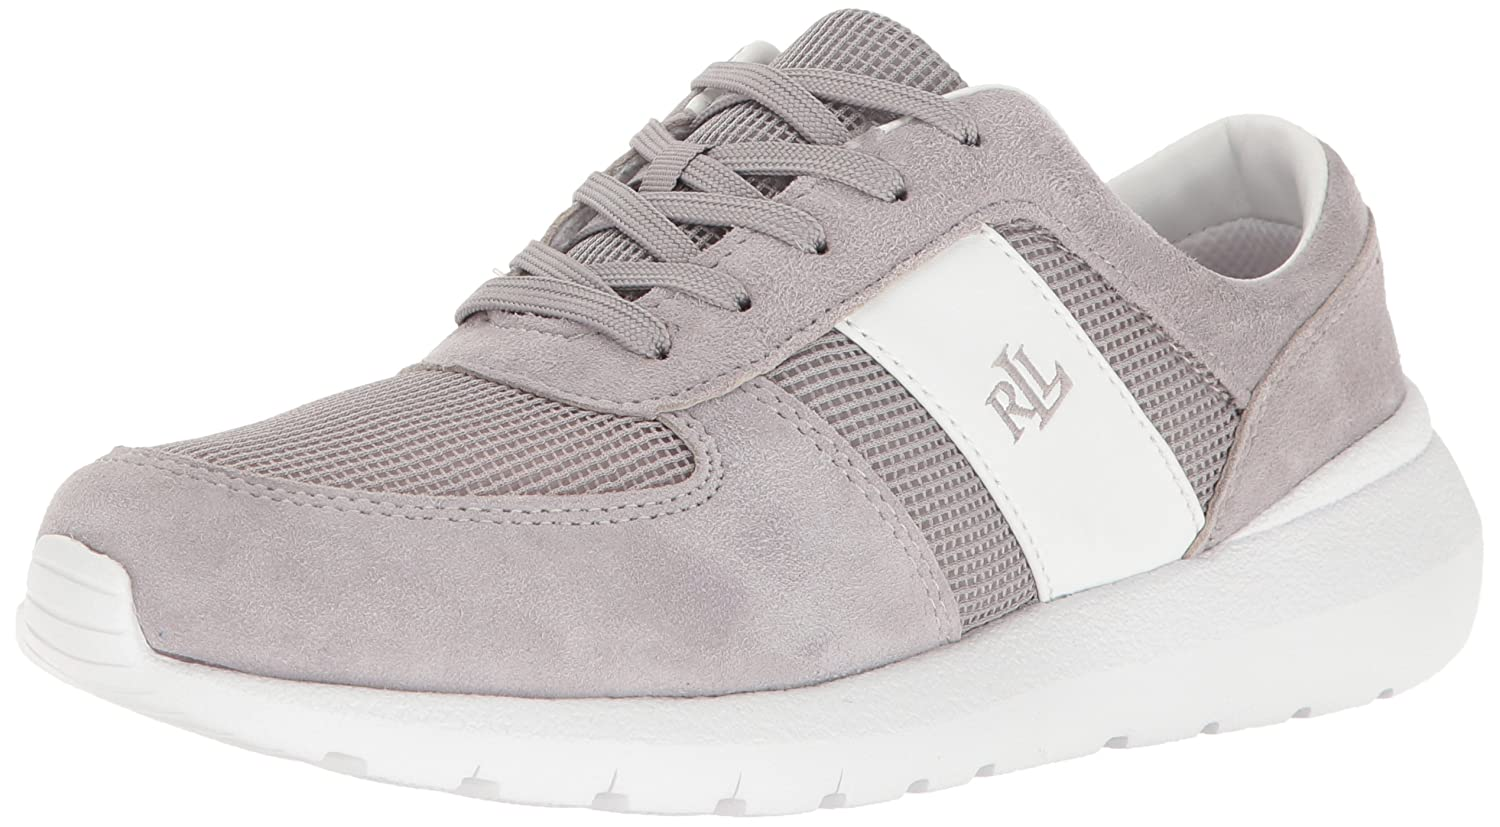 Lauren Ralph Lauren Women's Jay B01HLO25CI 6 B(M) US|Charcoal Grey/White